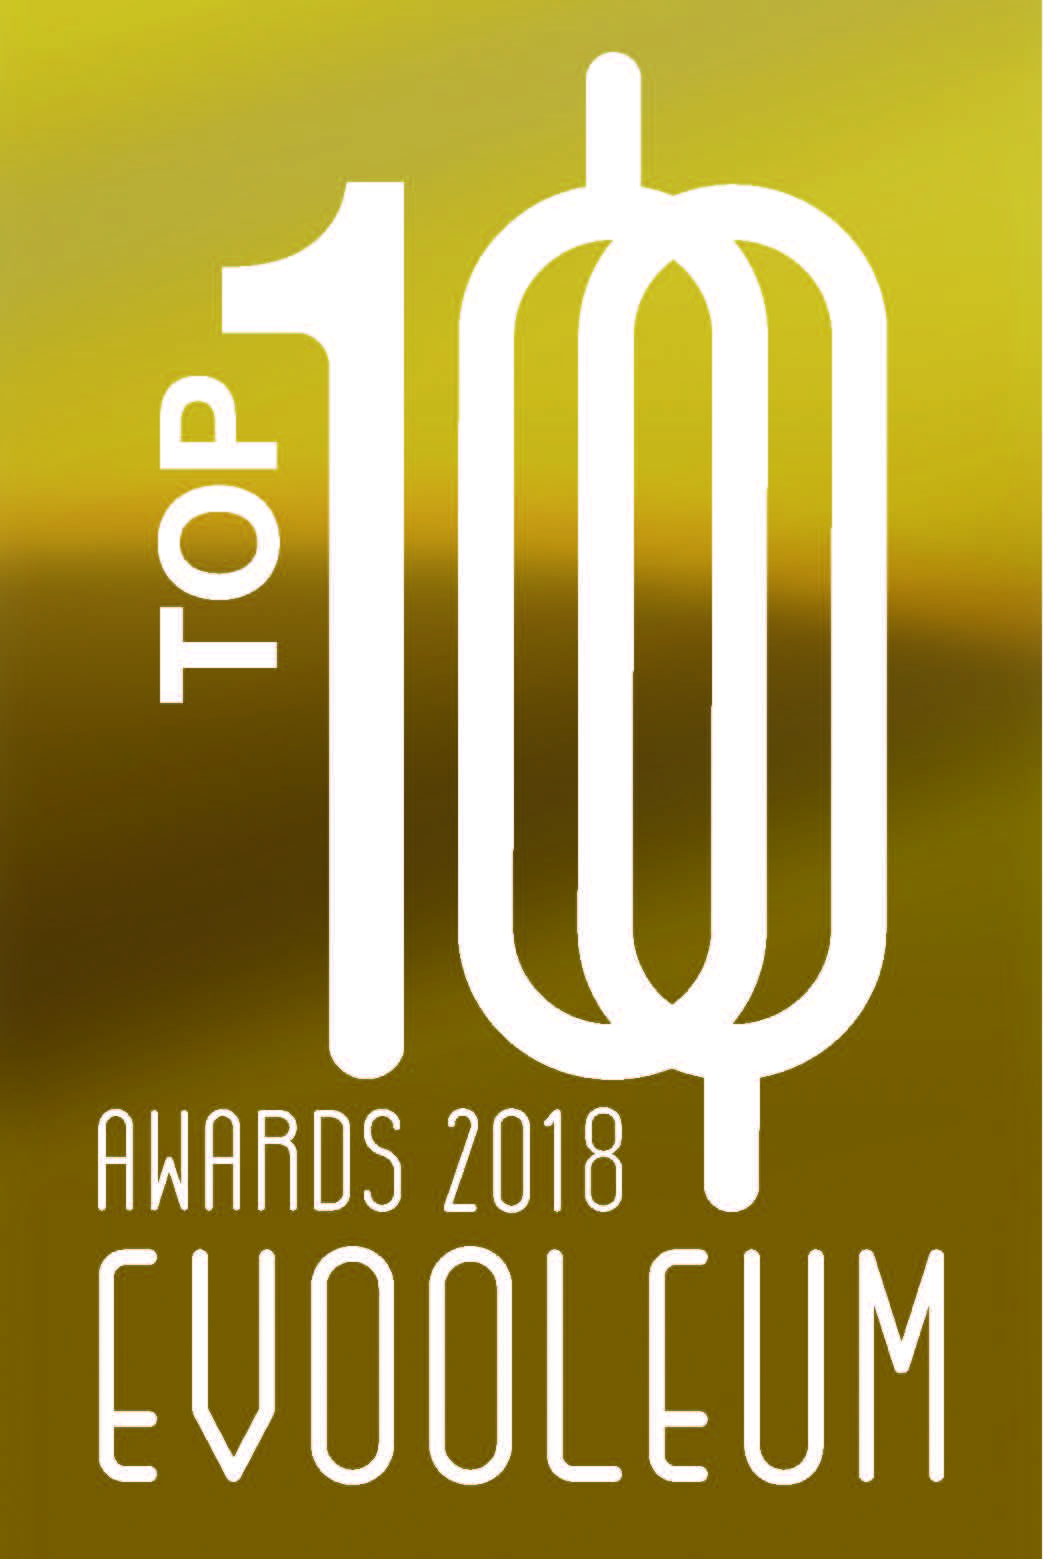 EVOOLEUM Award Top 100 Best Oils of the World